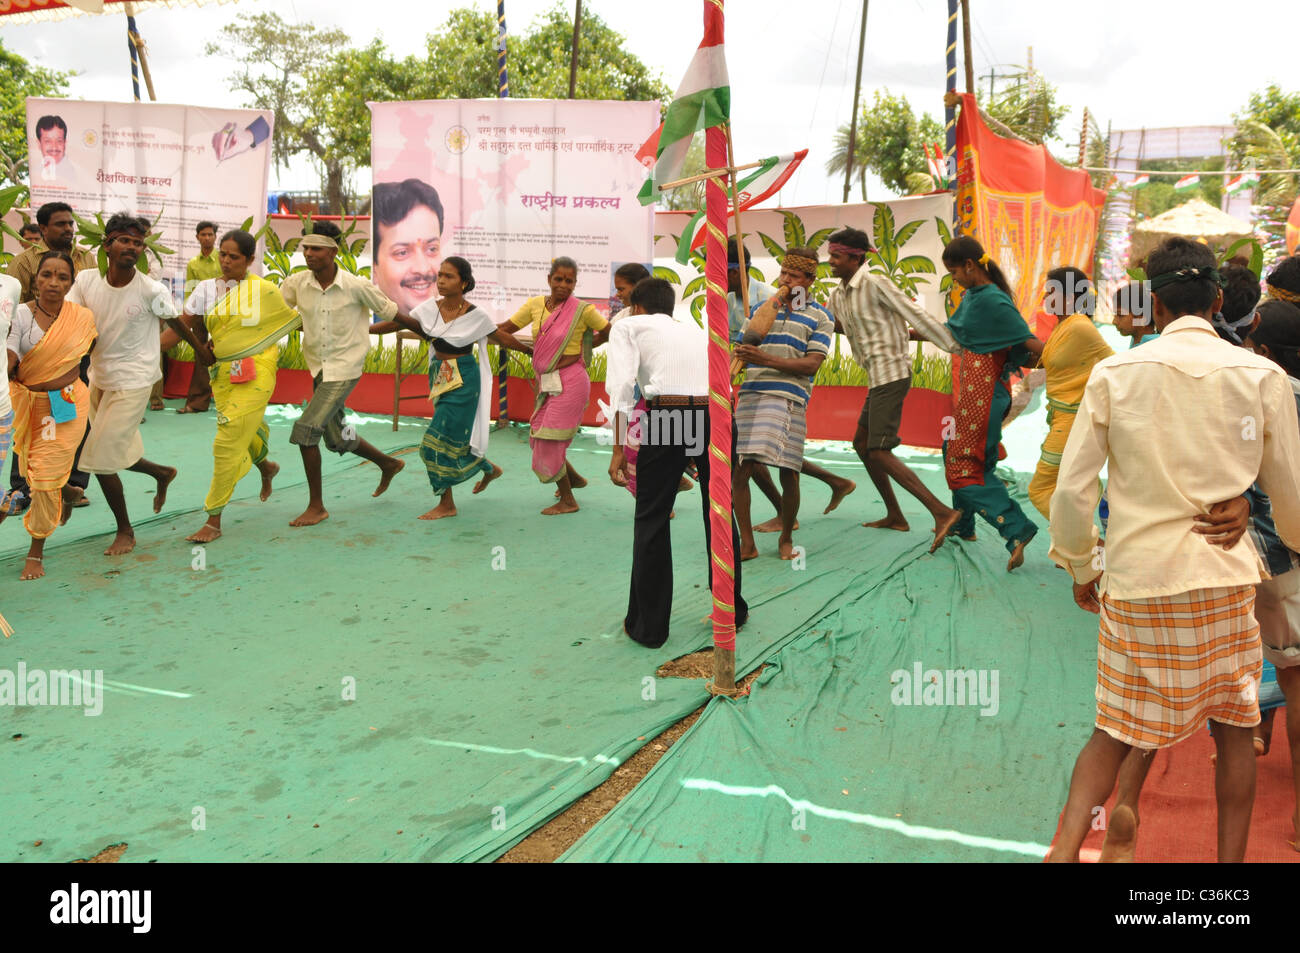 A group of Local Marathi Dancers Dancing at a Mass Marriage Ceremony. - Stock Image